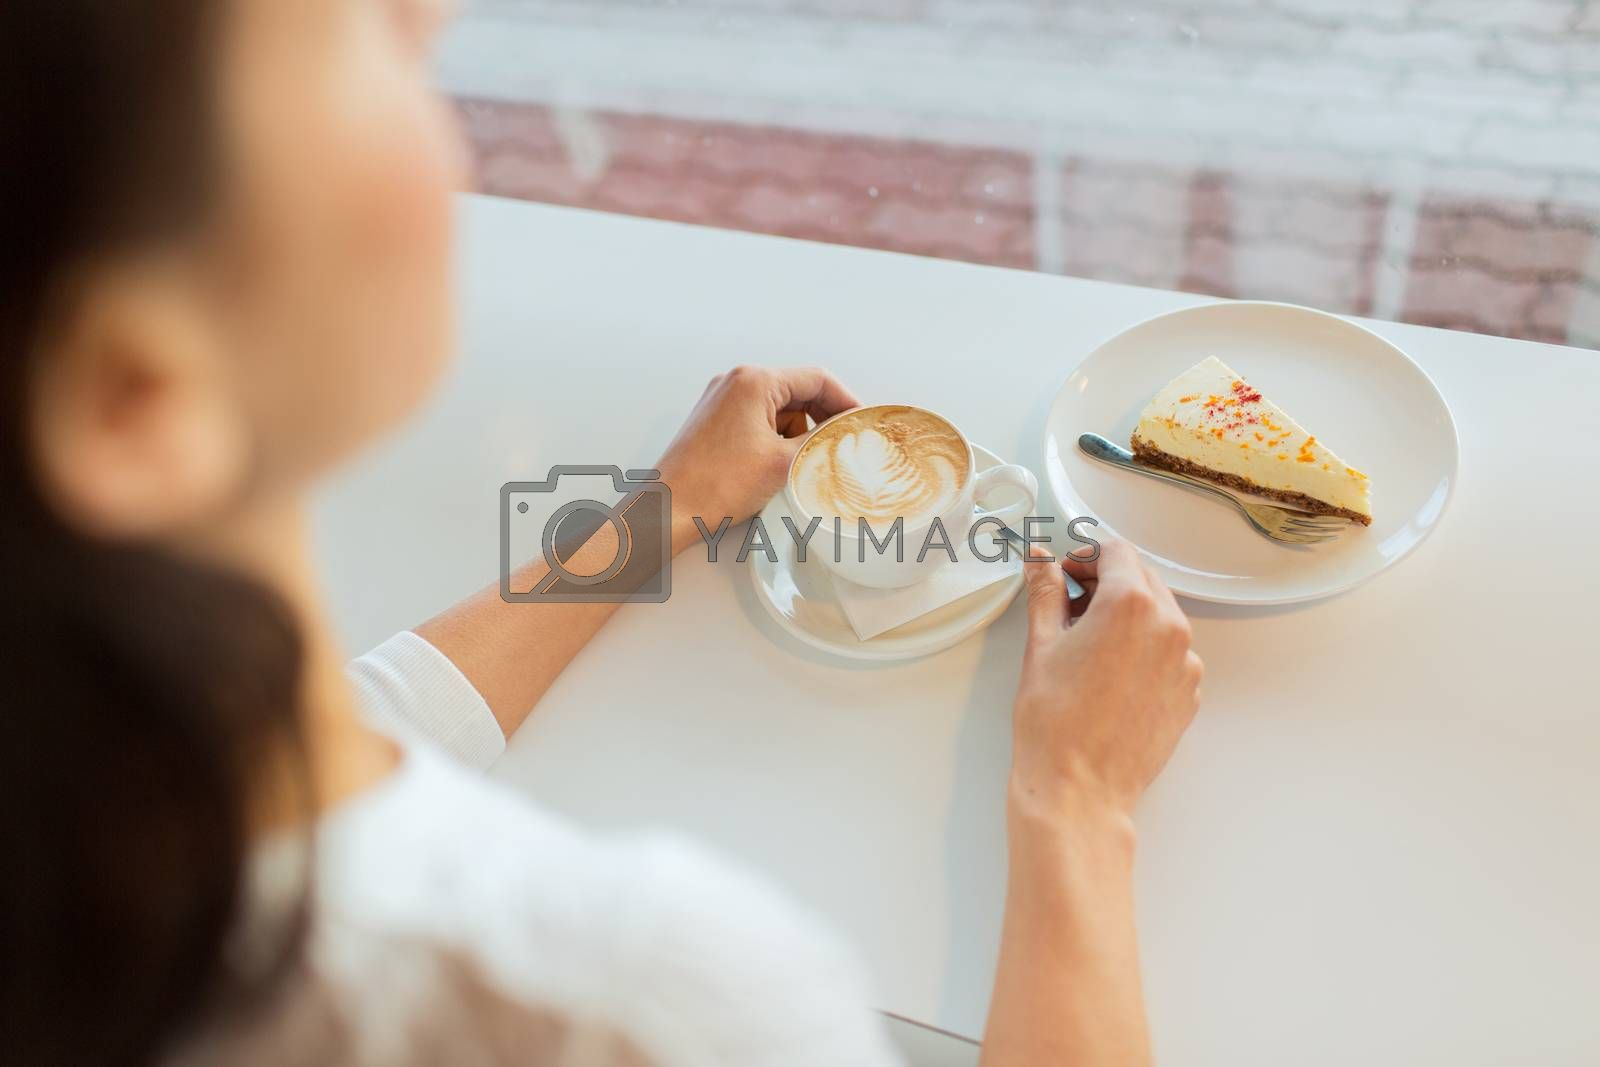 leisure, food and drinks, people and lifestyle concept - close up of young woman hands eating cake and drinking coffee at cafe